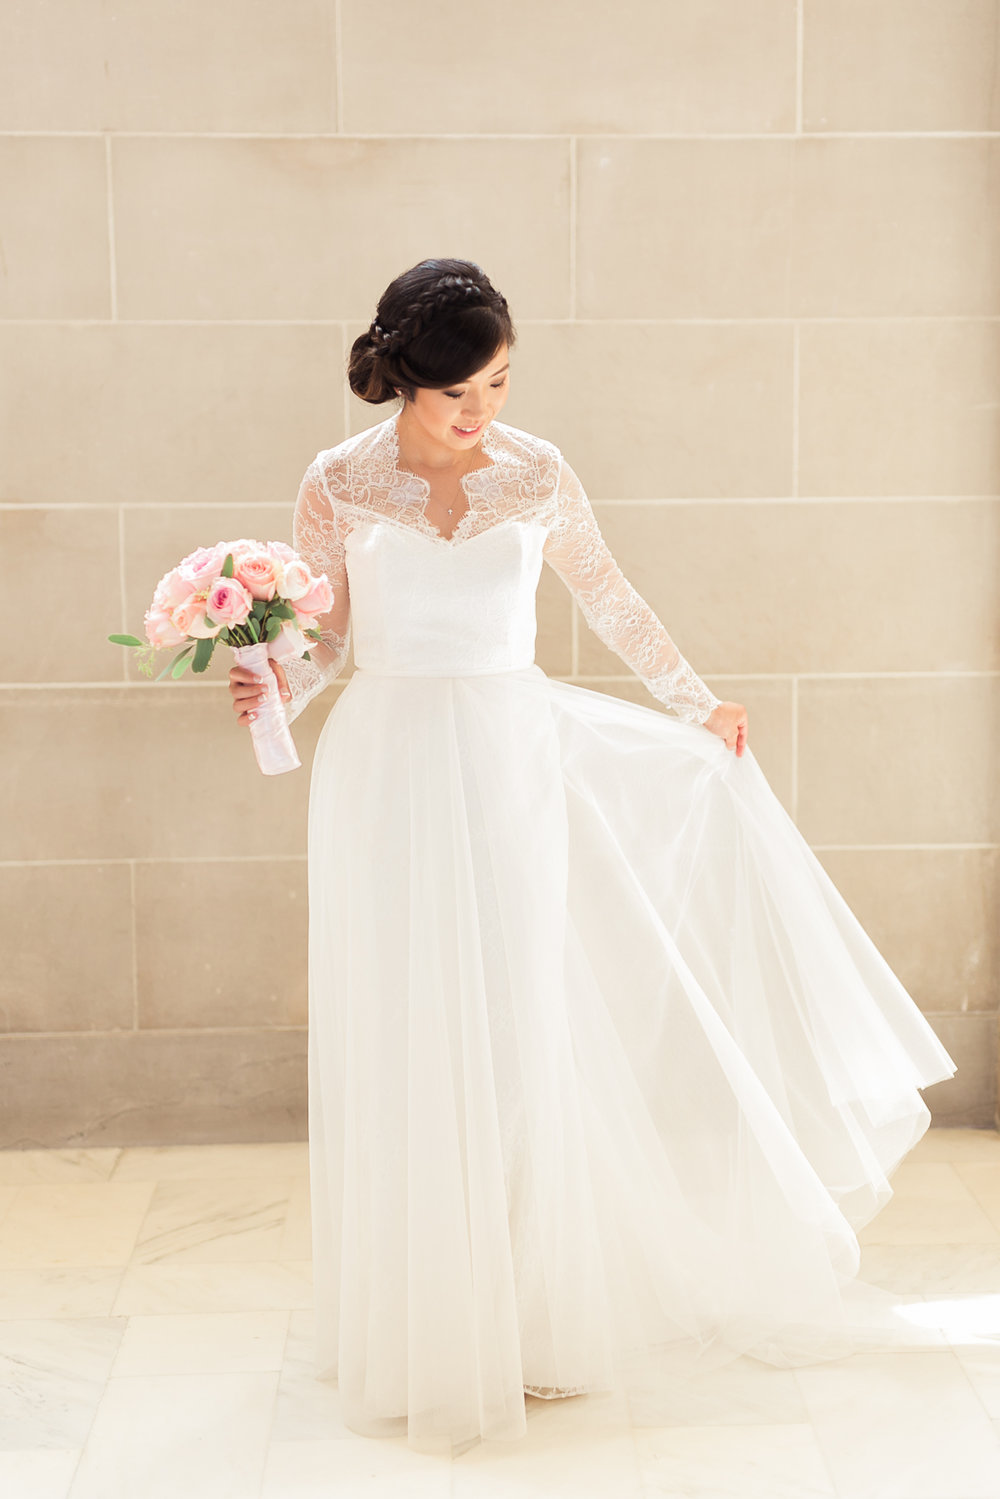 long-sleeve-lace-wedding-dress-2.jpg